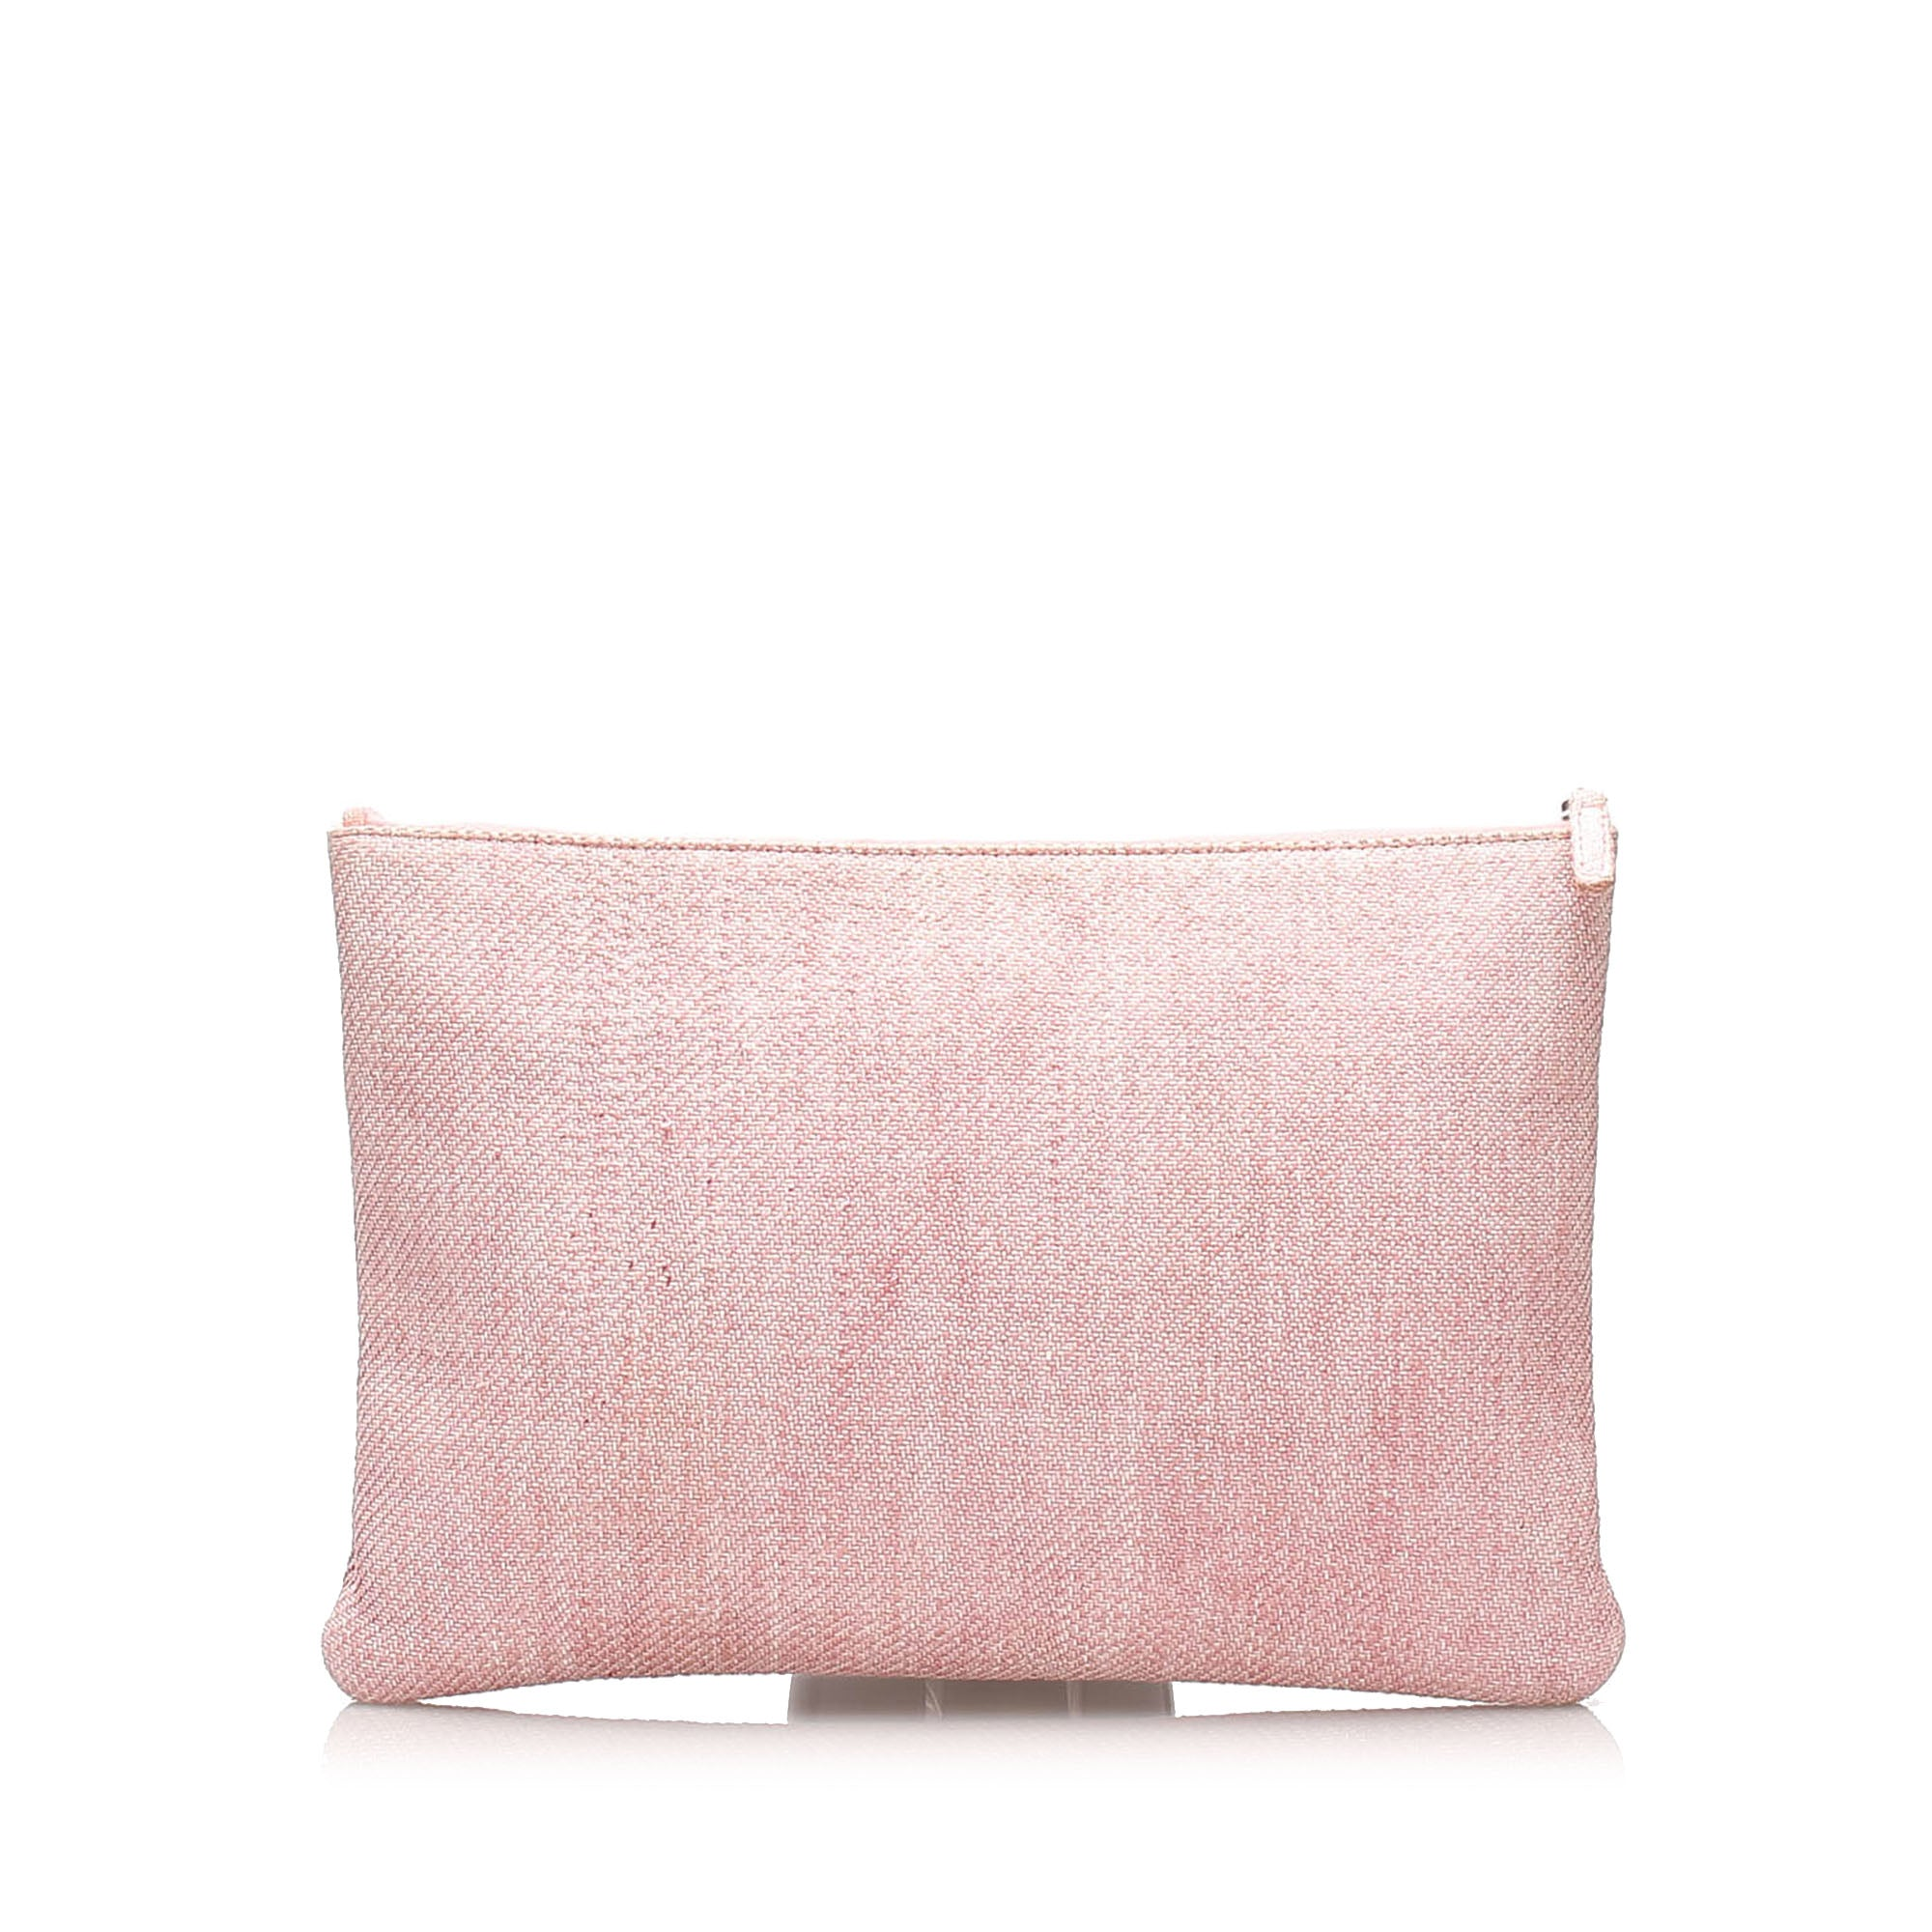 Chanel Pink Deauville O-Case Canvas Clutch Bag